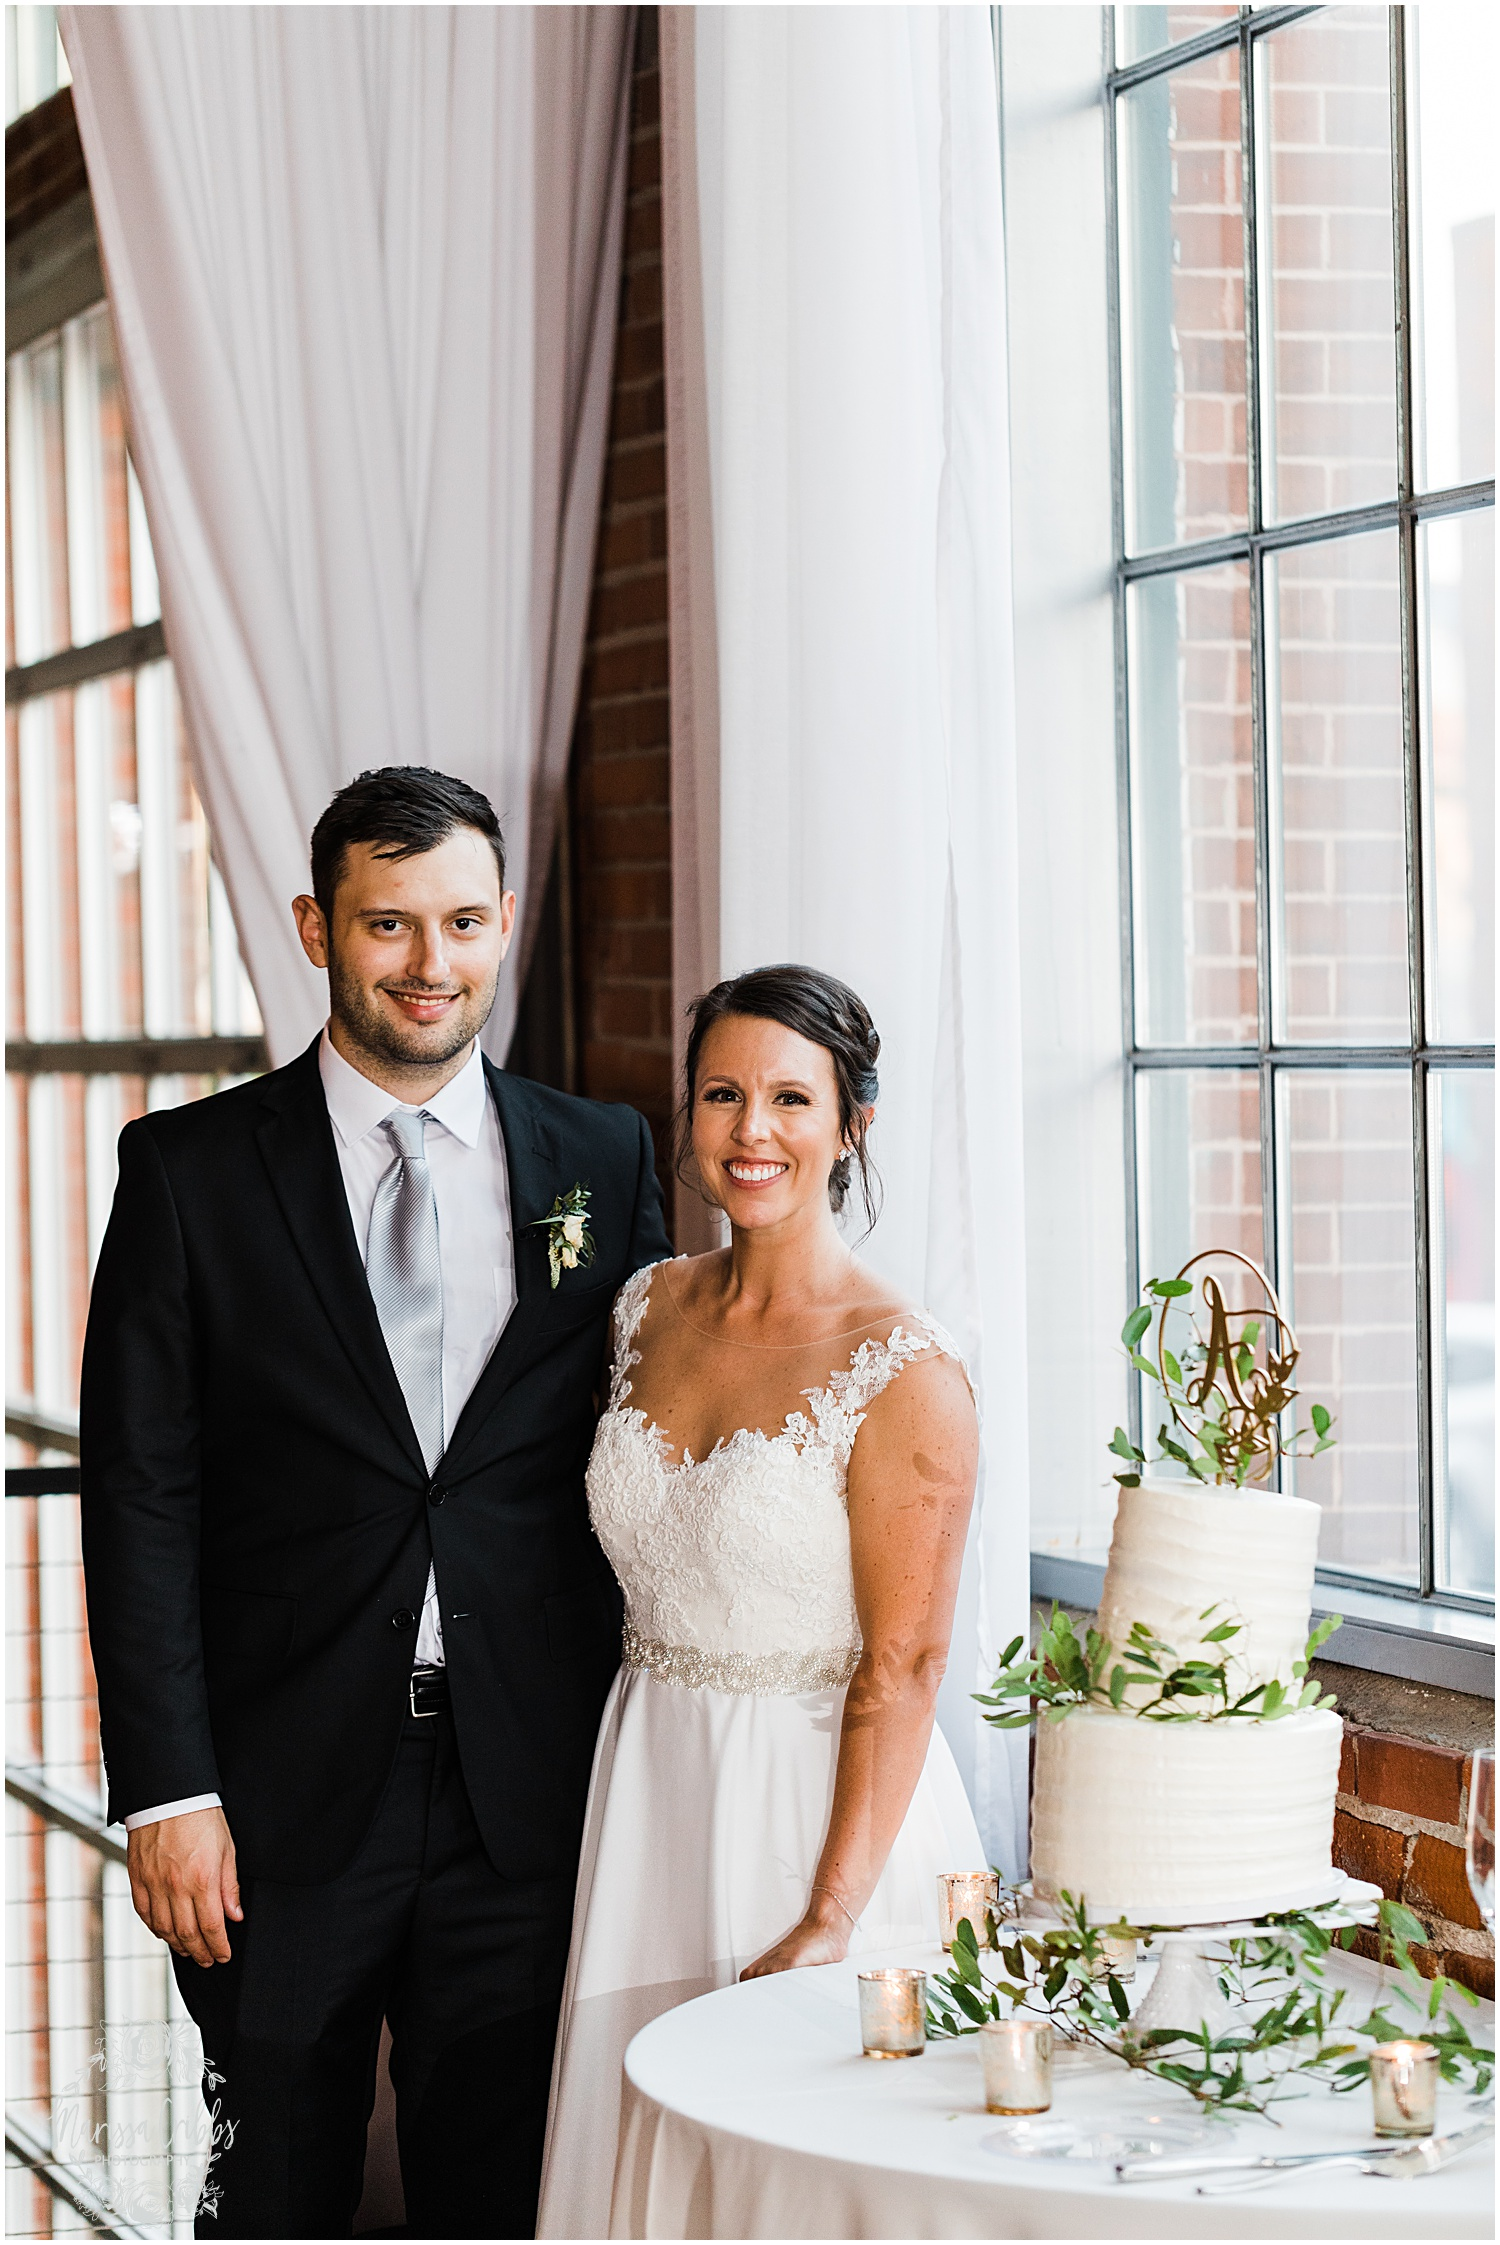 KELLY & MITCH MARRIED BLOG | MARISSA CRIBBS PHOTOGRAPHY | THE EVERLY EVENT SPACE_8911.jpg